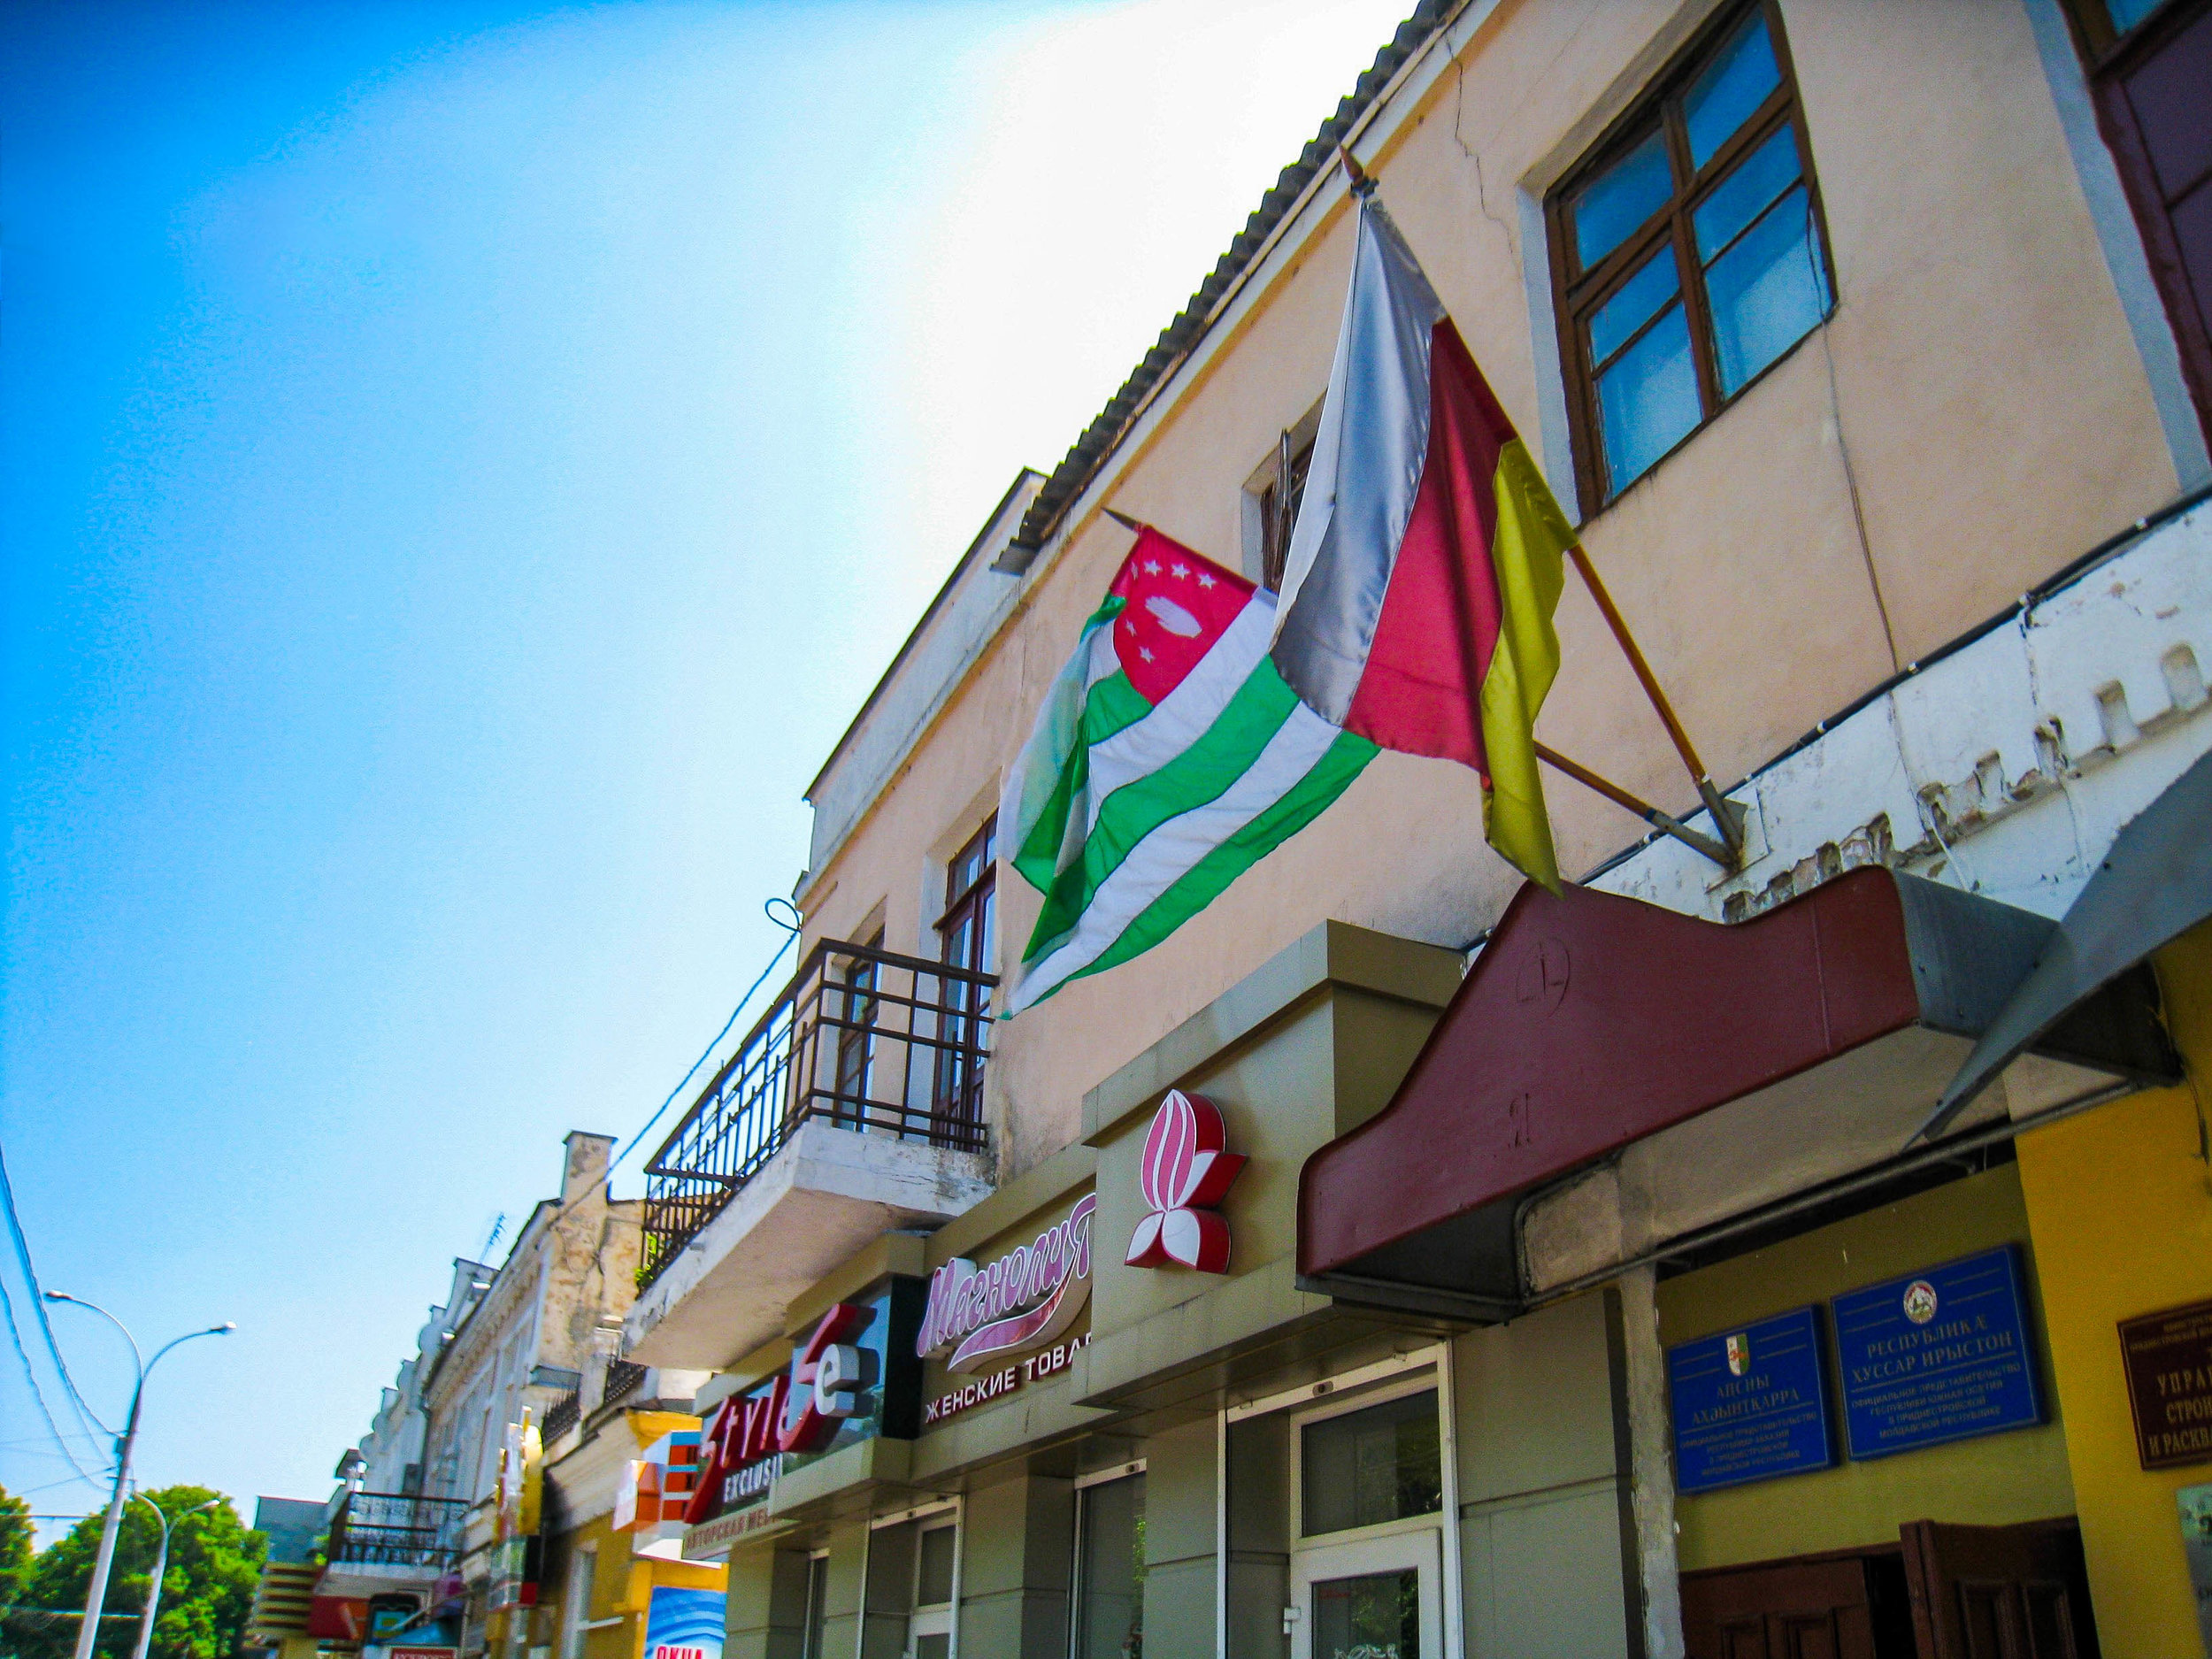 Flags of Abkhazia and South Ossetia